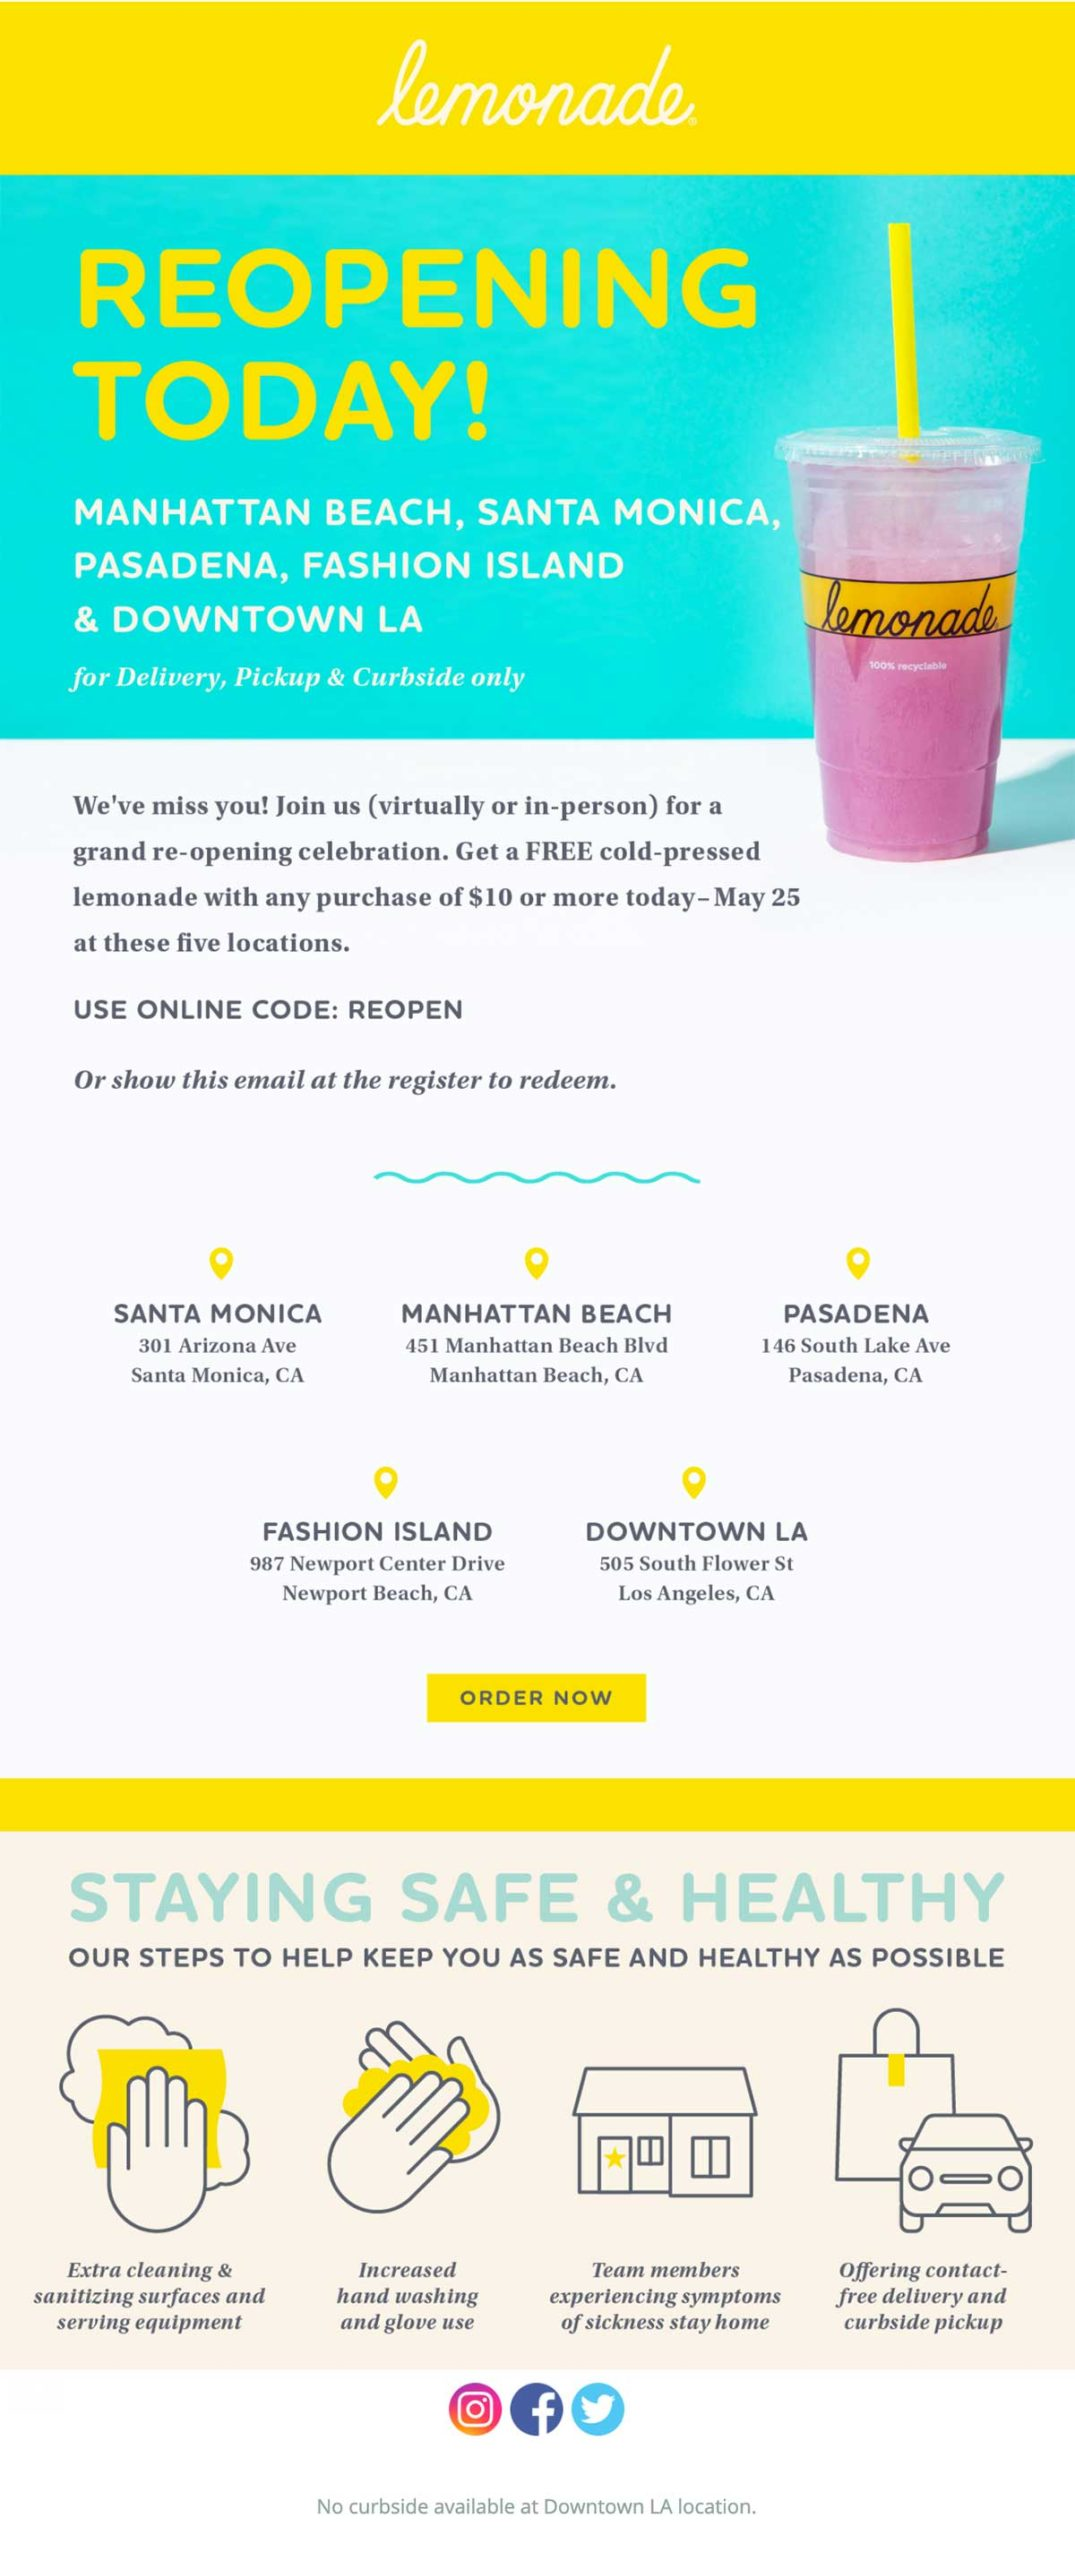 Lemonade: Reopening Today Email